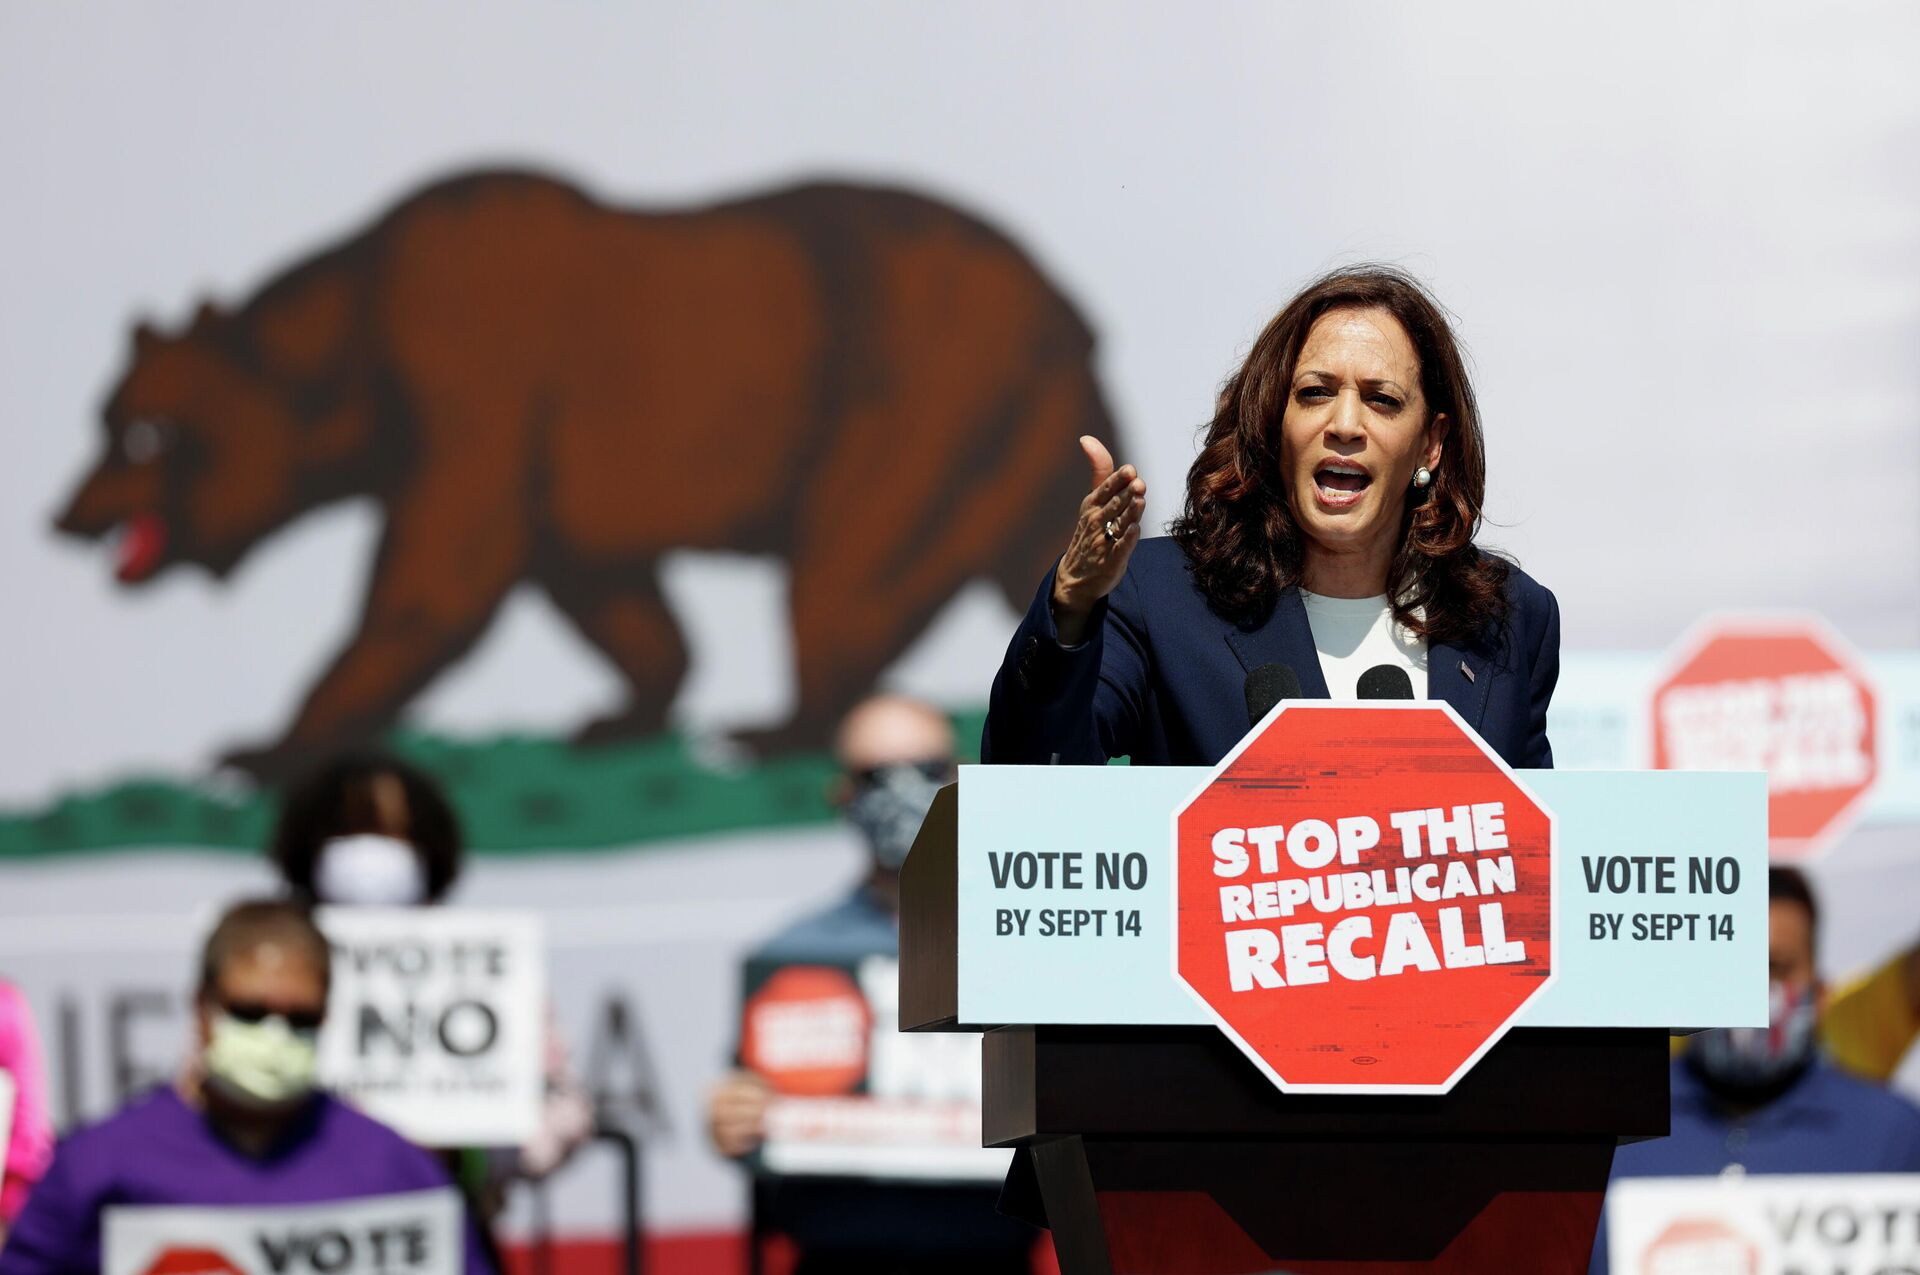 U.S. Vice President Kamala Harris speaks during an appearance with California Governor Gavin Newsom, who is facing a Republican-led recall election in September, in San Leandro, California, U.S., September 8, 2021 - Sputnik International, 1920, 14.09.2021